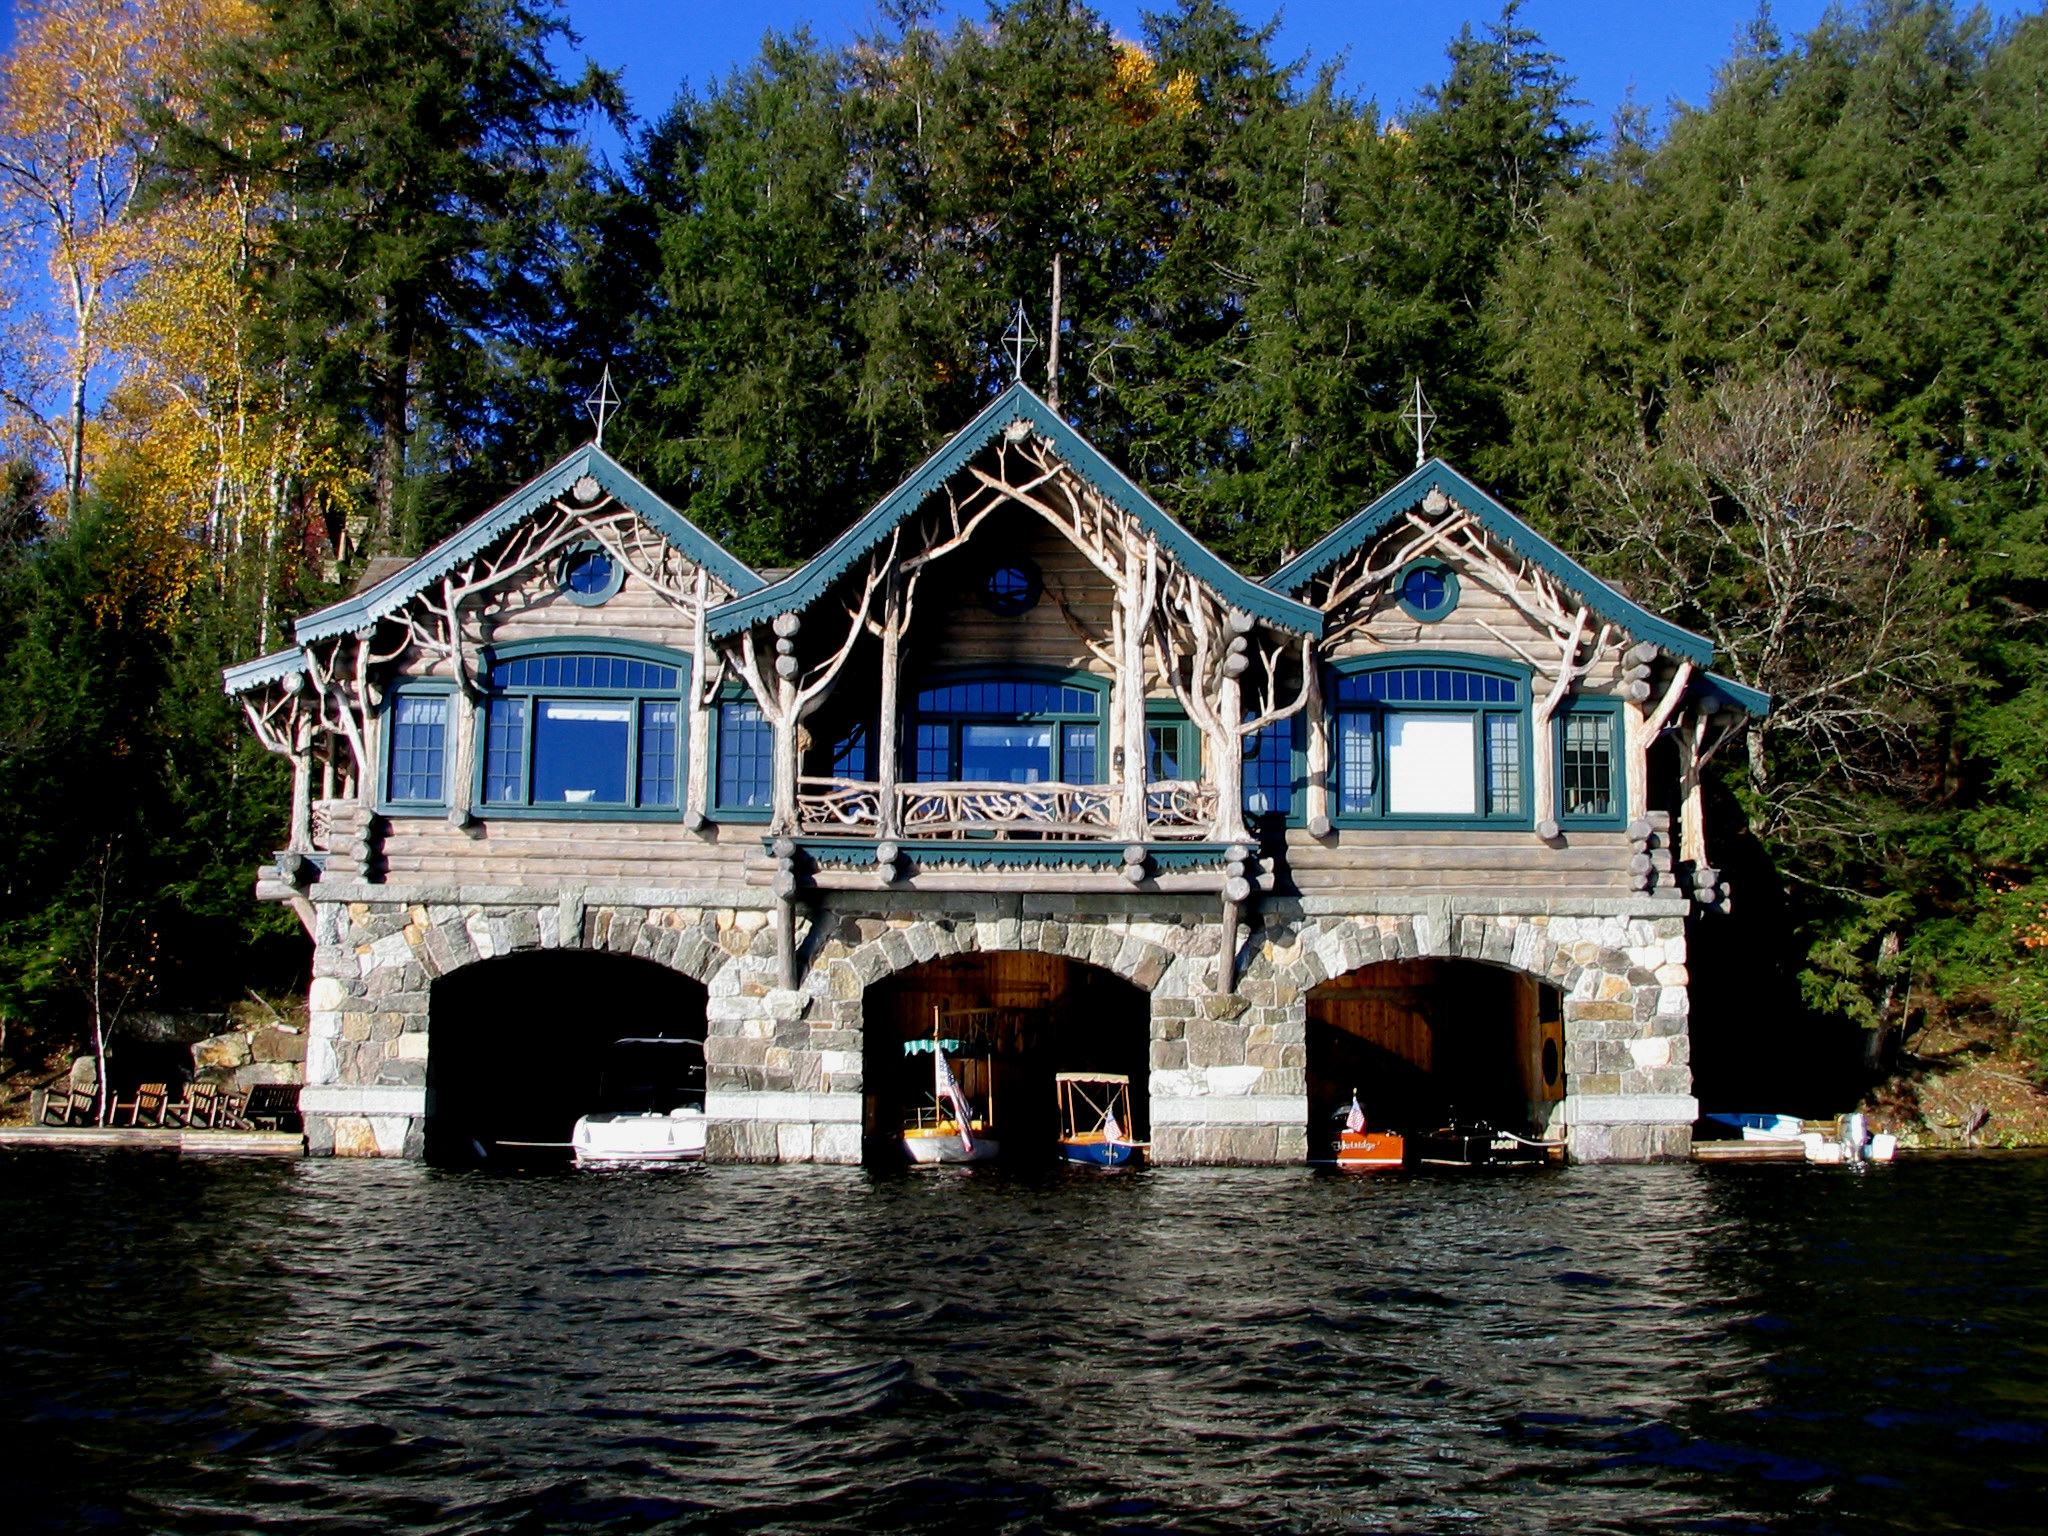 Boathouse on carriage house boat